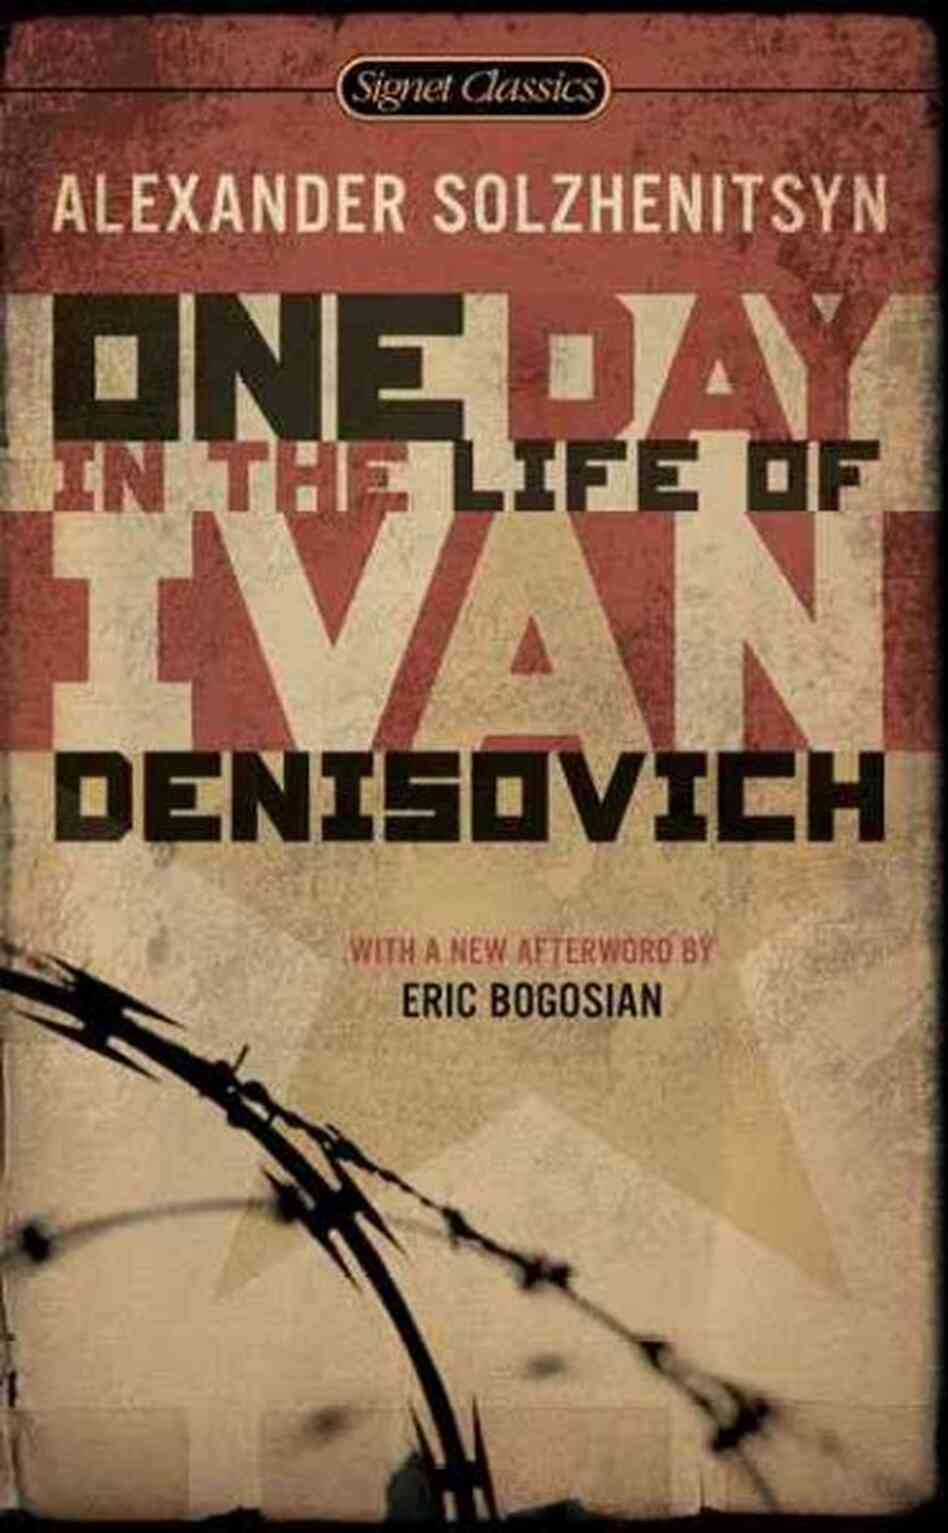 "a day in the life of ivan denisovich - a day in the life of ivan denisovich the novel: a day in the life of ivan denisovich (written by alexander solzhenitzyn), tells the story of a russian soldier's life in a siberian labor camp around the time of world war ii the protagonist in the story, ivan, better known as ""shukhov"", is wrongly accused of committing treason and is."